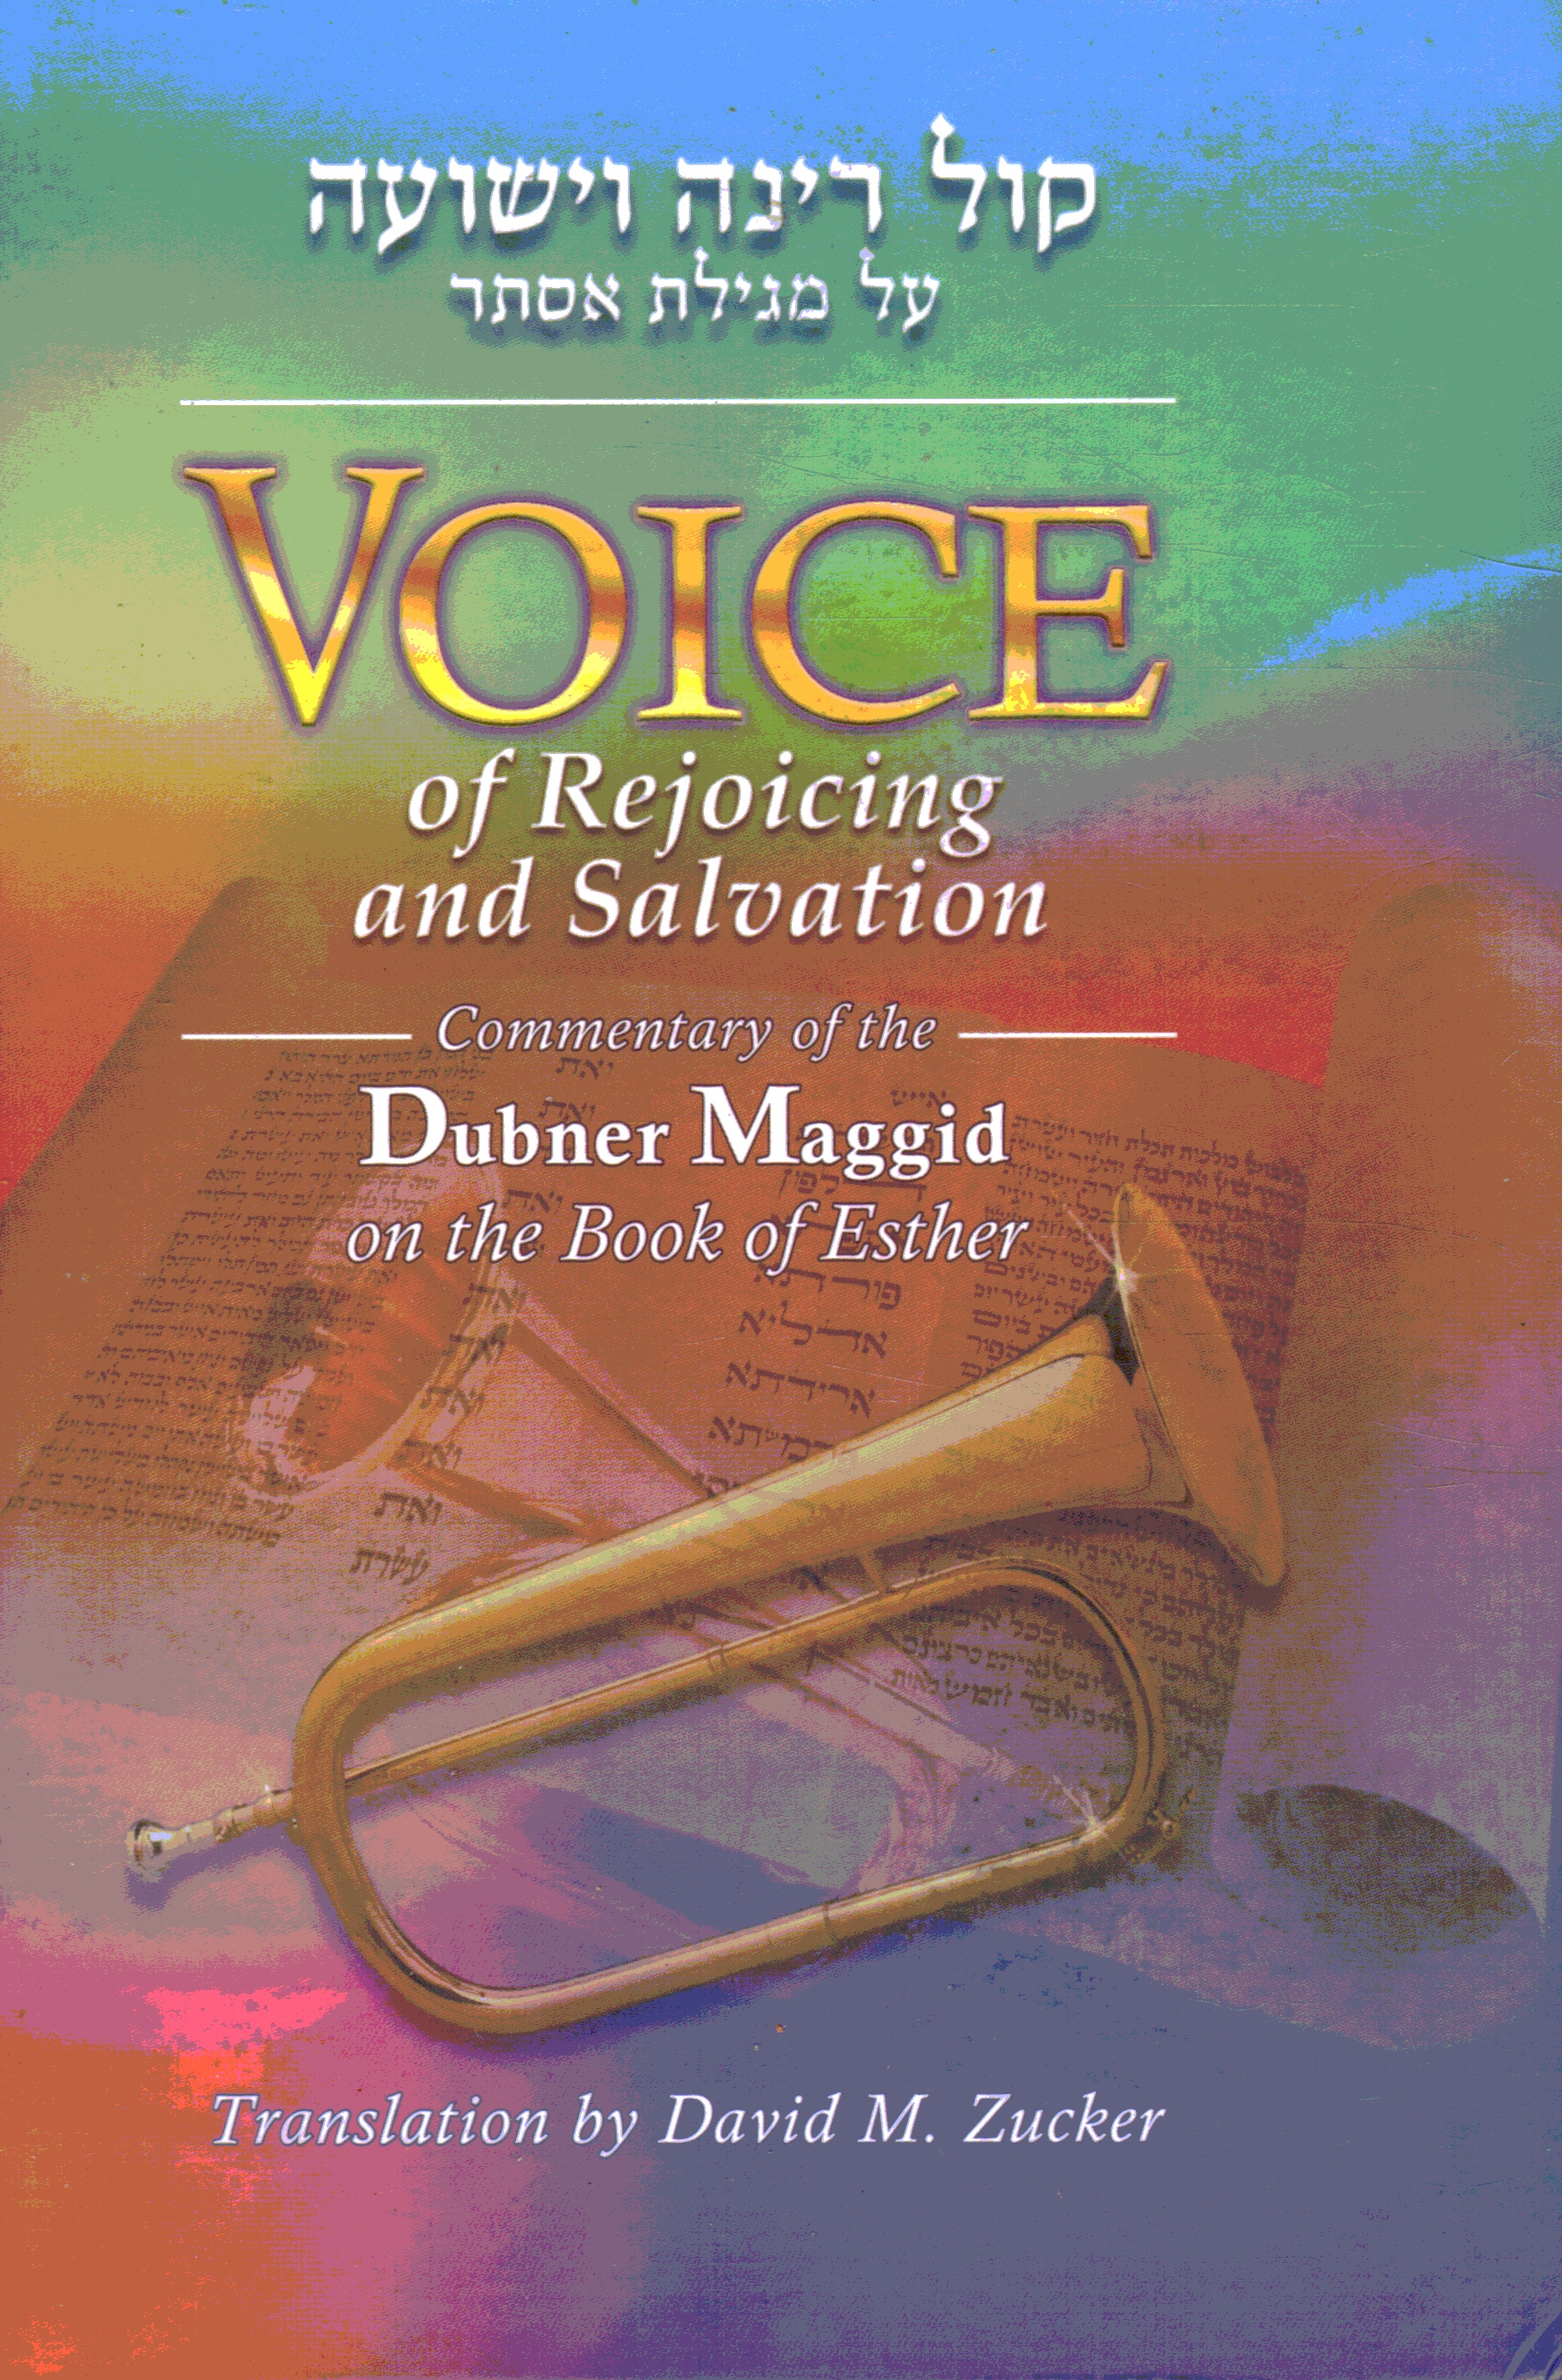 Image for Voice of Rejoicing and Salvation: Commentary of the Dubner Maggid on the Book of Esther